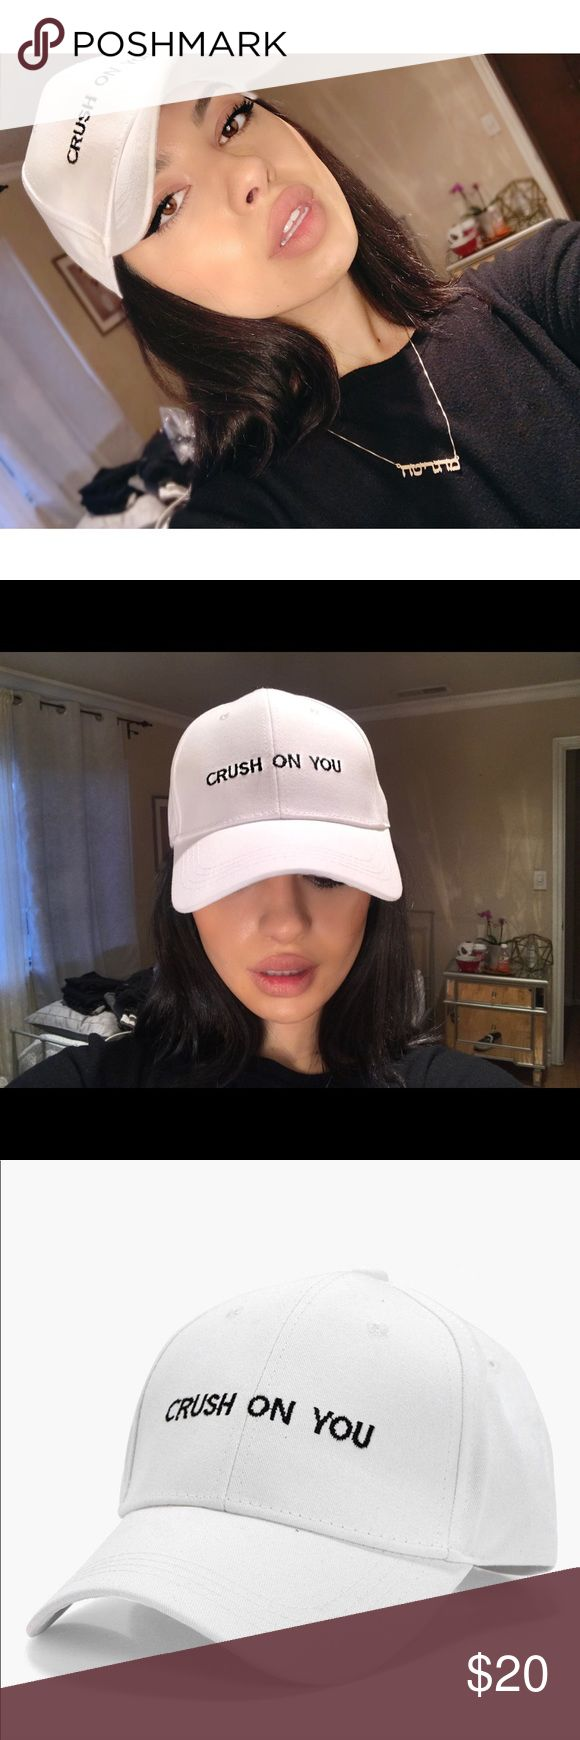 Crush On You White Dad Hat Very cute and versatile cap! Amazing for covering eyes from the sun or wearing to the gym. This hat will go with any outfit. Accessories Hats